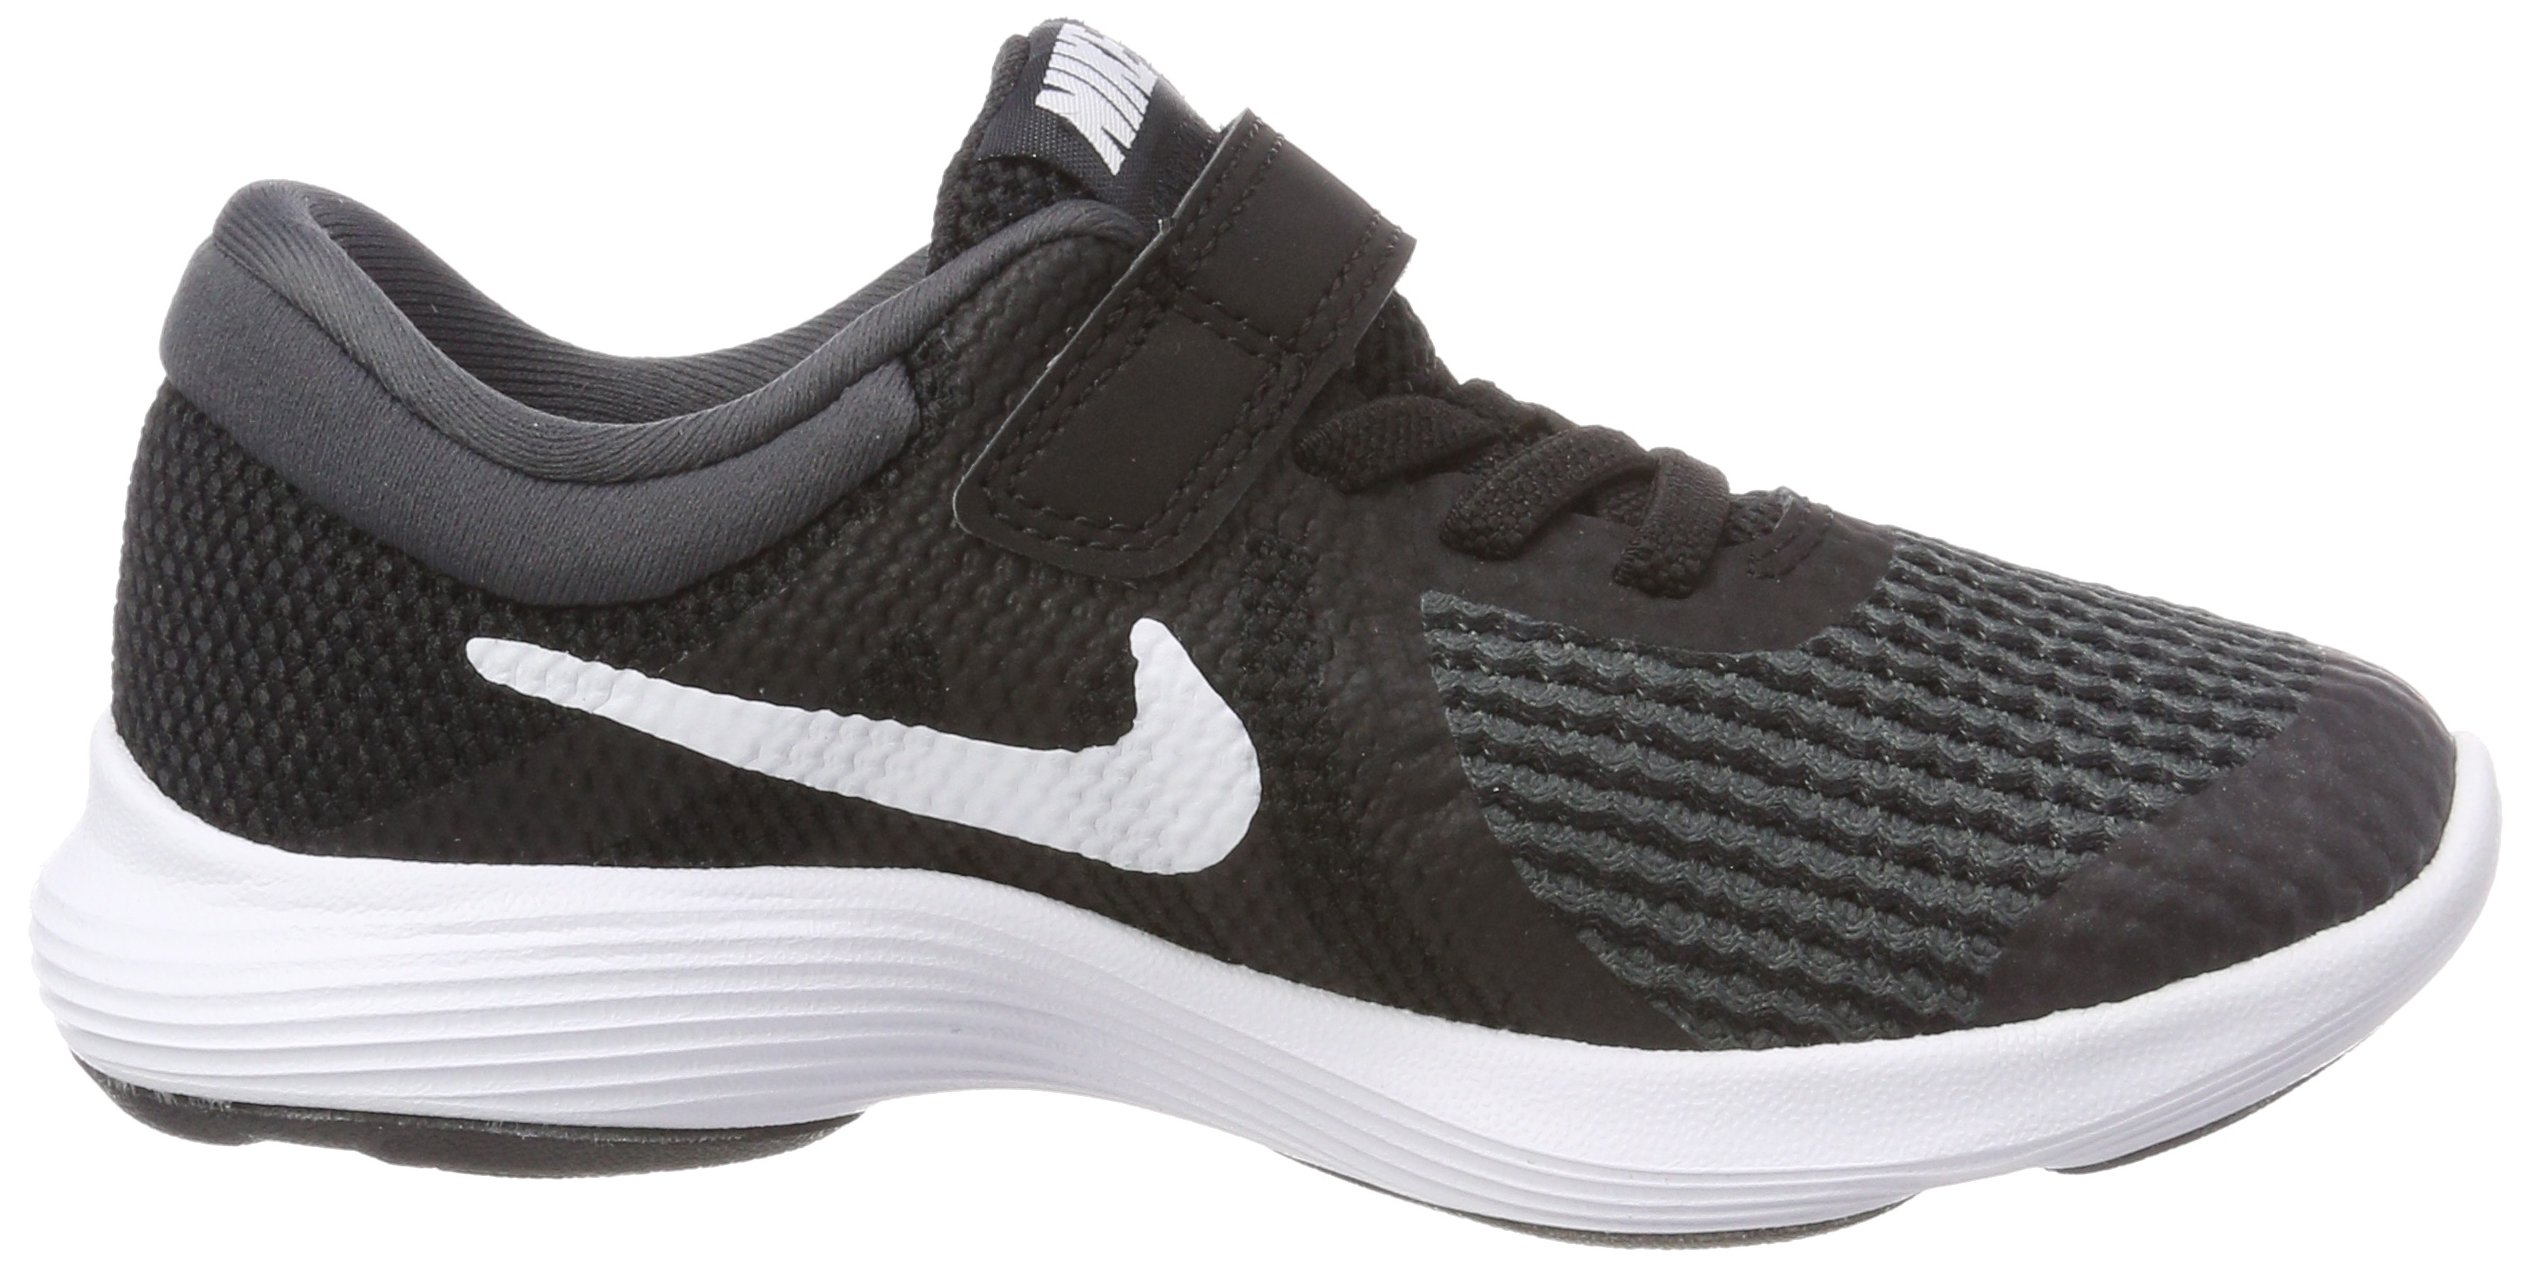 Nike Boys' Revolution 4 (PSV) Running Shoe, Black/White-Anthracite, 10.5C Youth US Little Kid by Nike (Image #6)